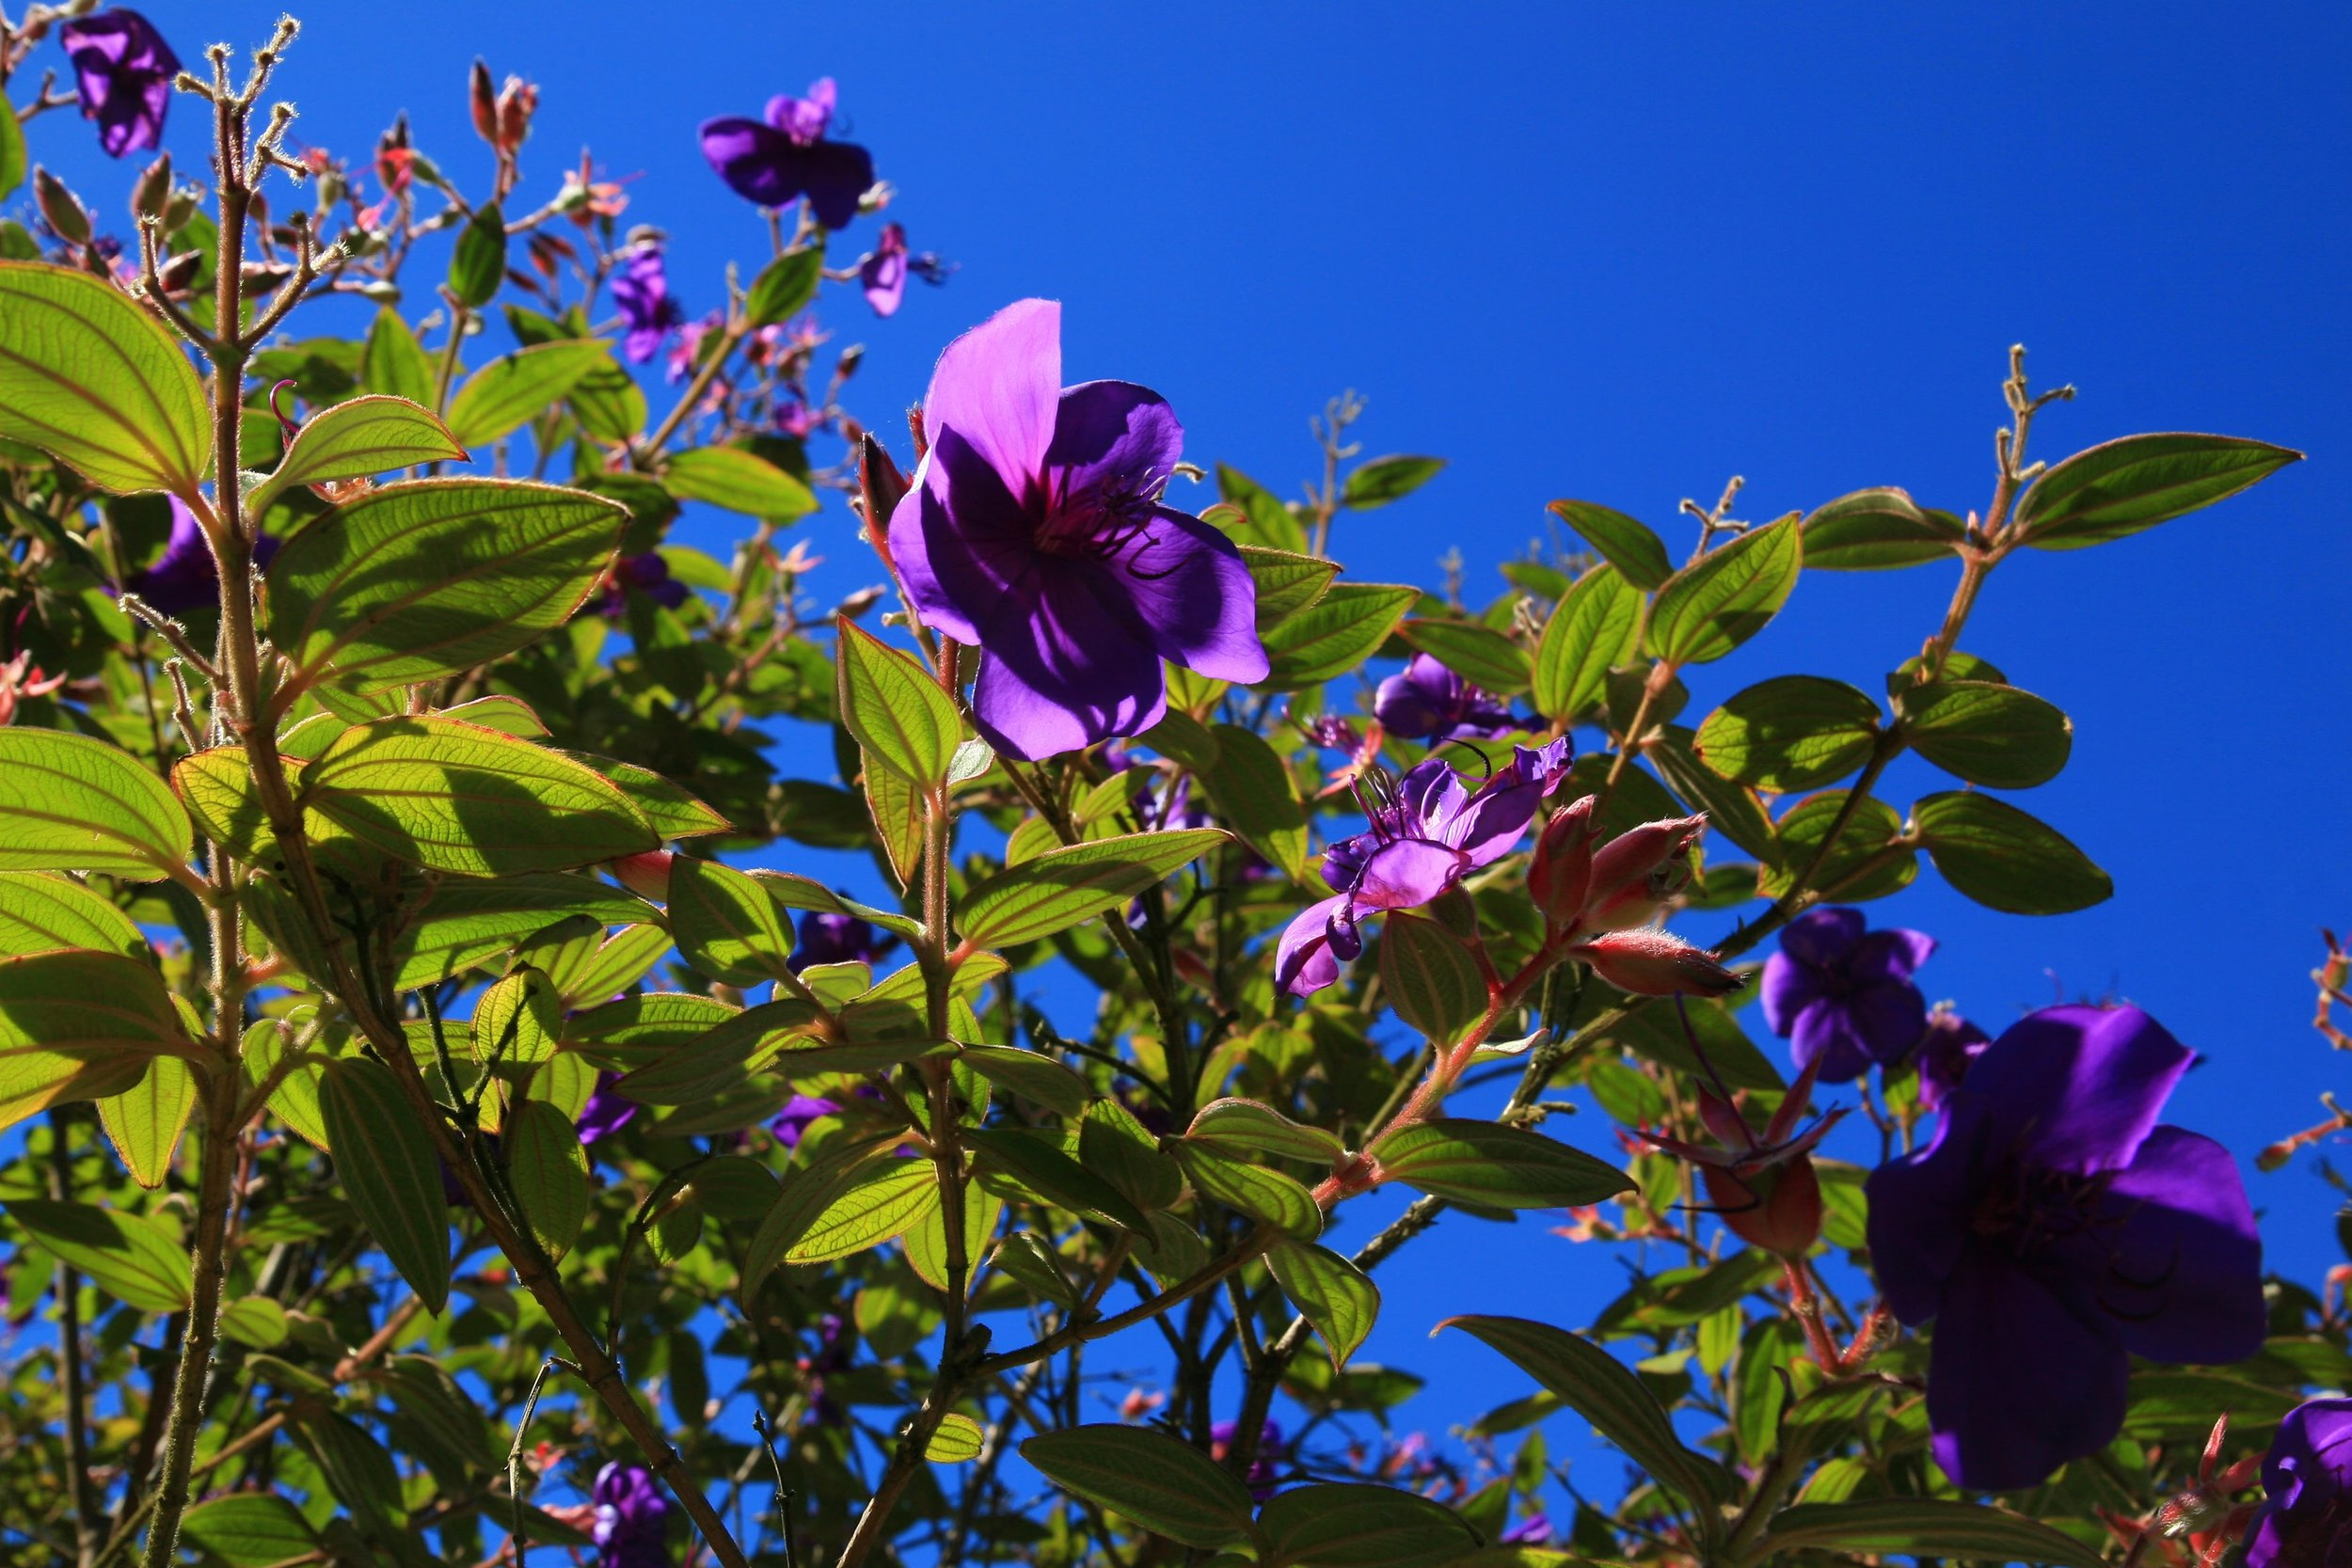 Tibouchina  at the GFE.